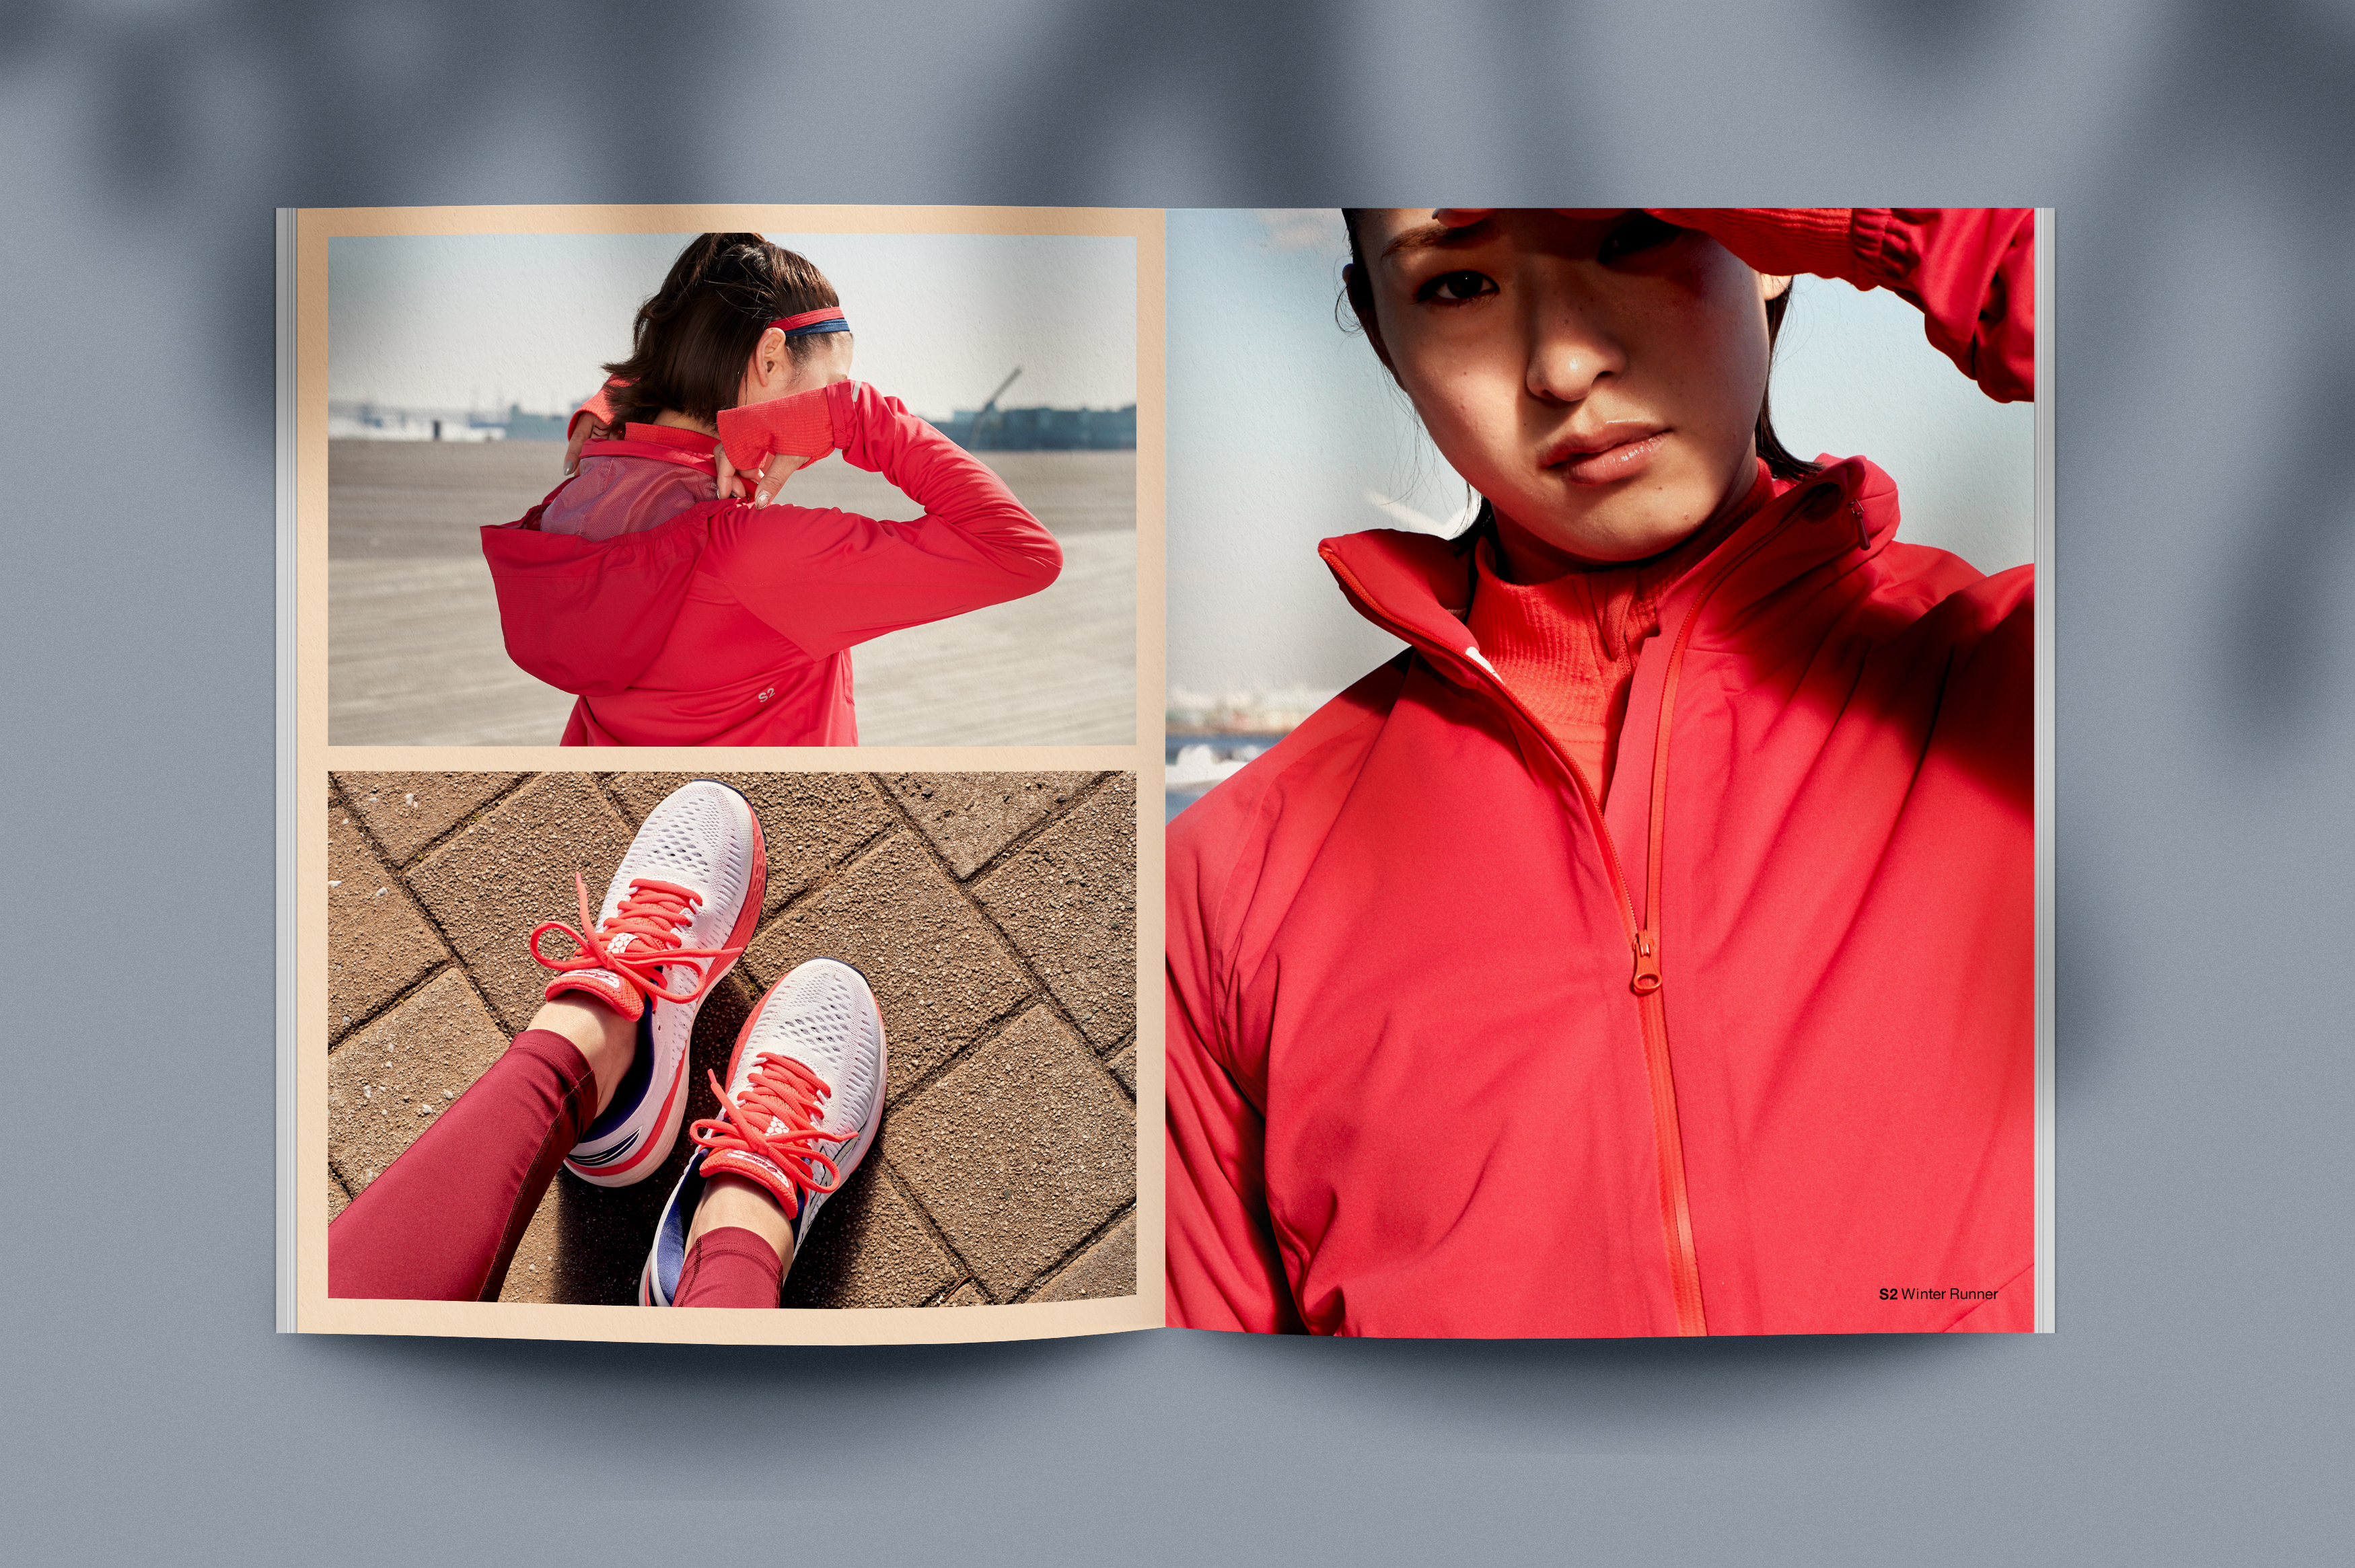 Ryan_Bubion_ASICS_Lookbook_03